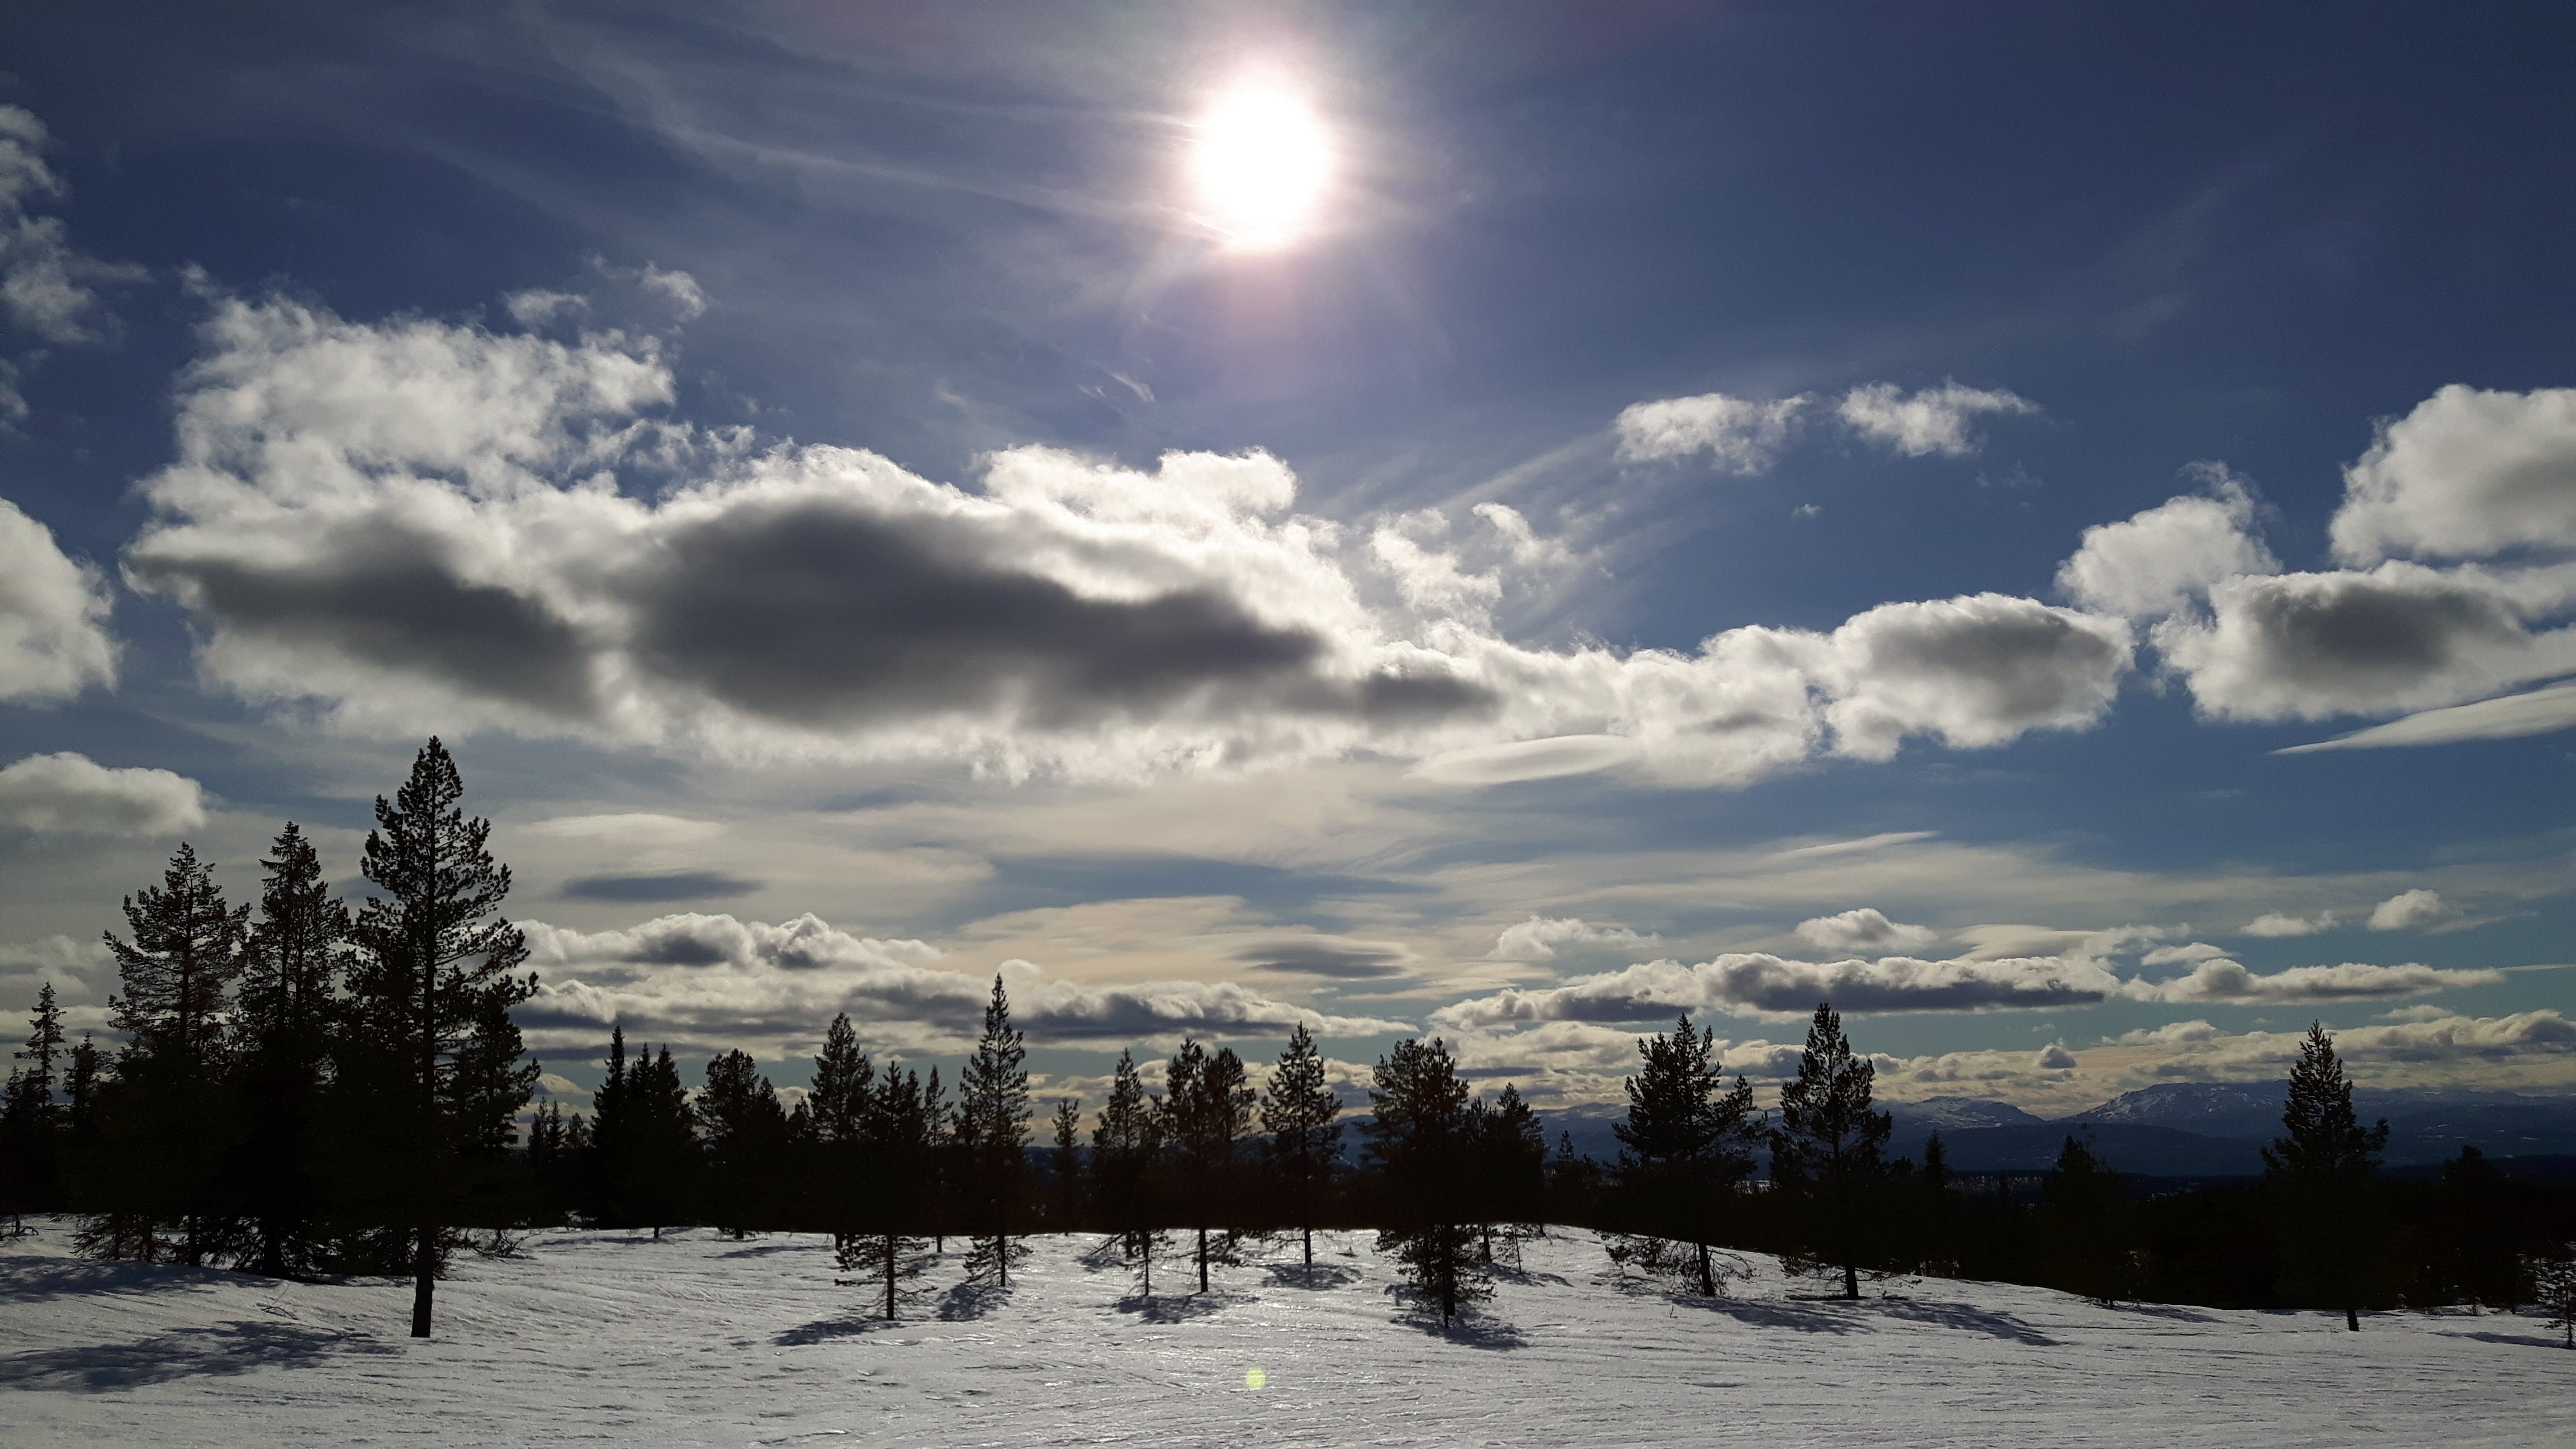 Snowfield With Trees over Clear Blue Skies during Day Time